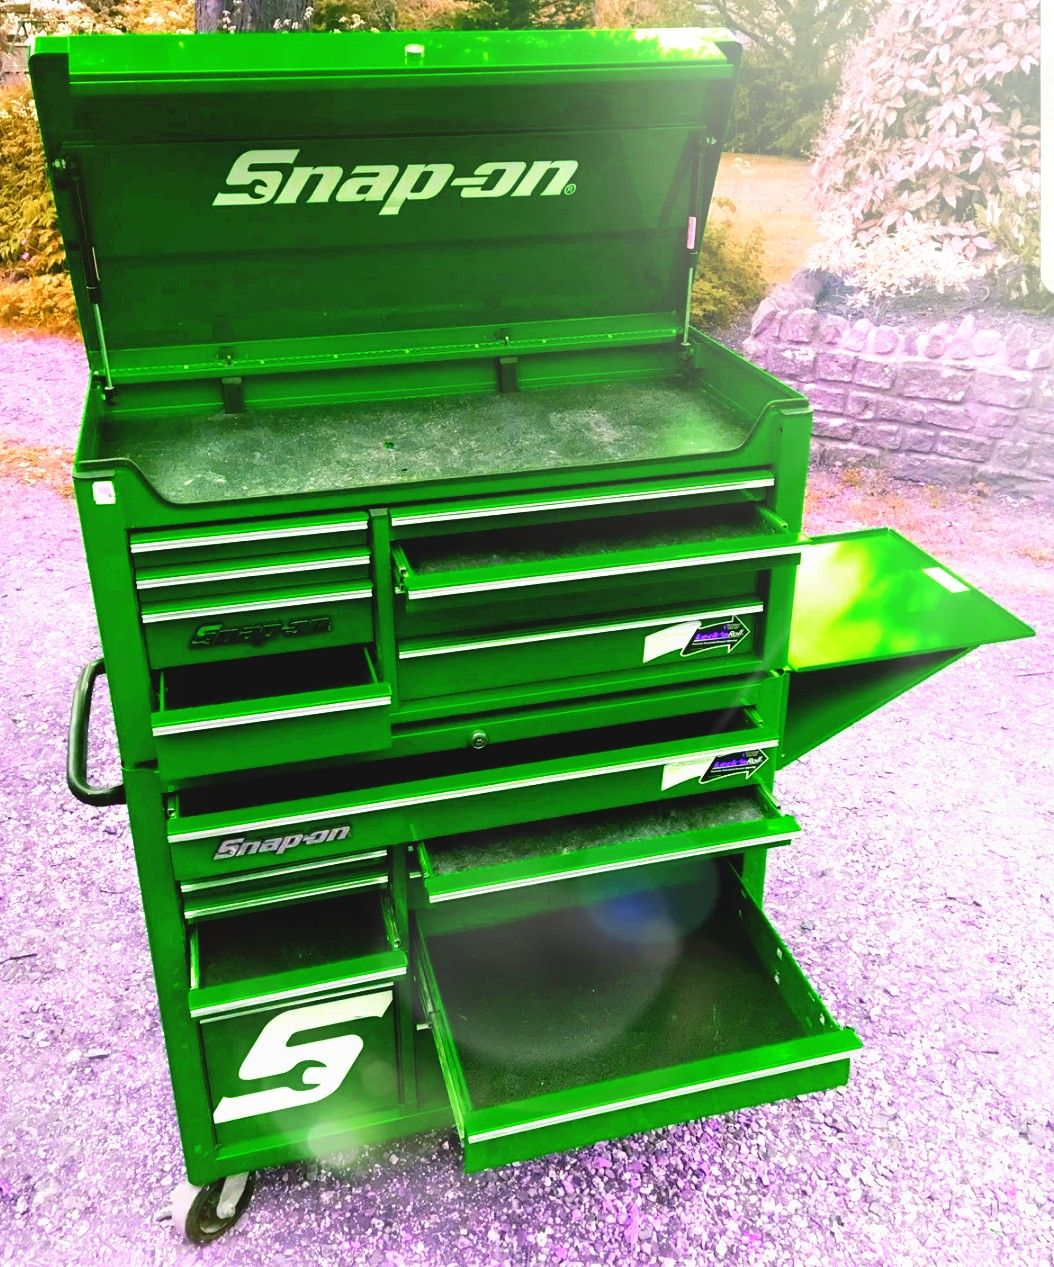 Green Snap On Roller Cab Tool Chest Every Garages Dream Garage Tools Tool Box Storage Shop Tool Boxes